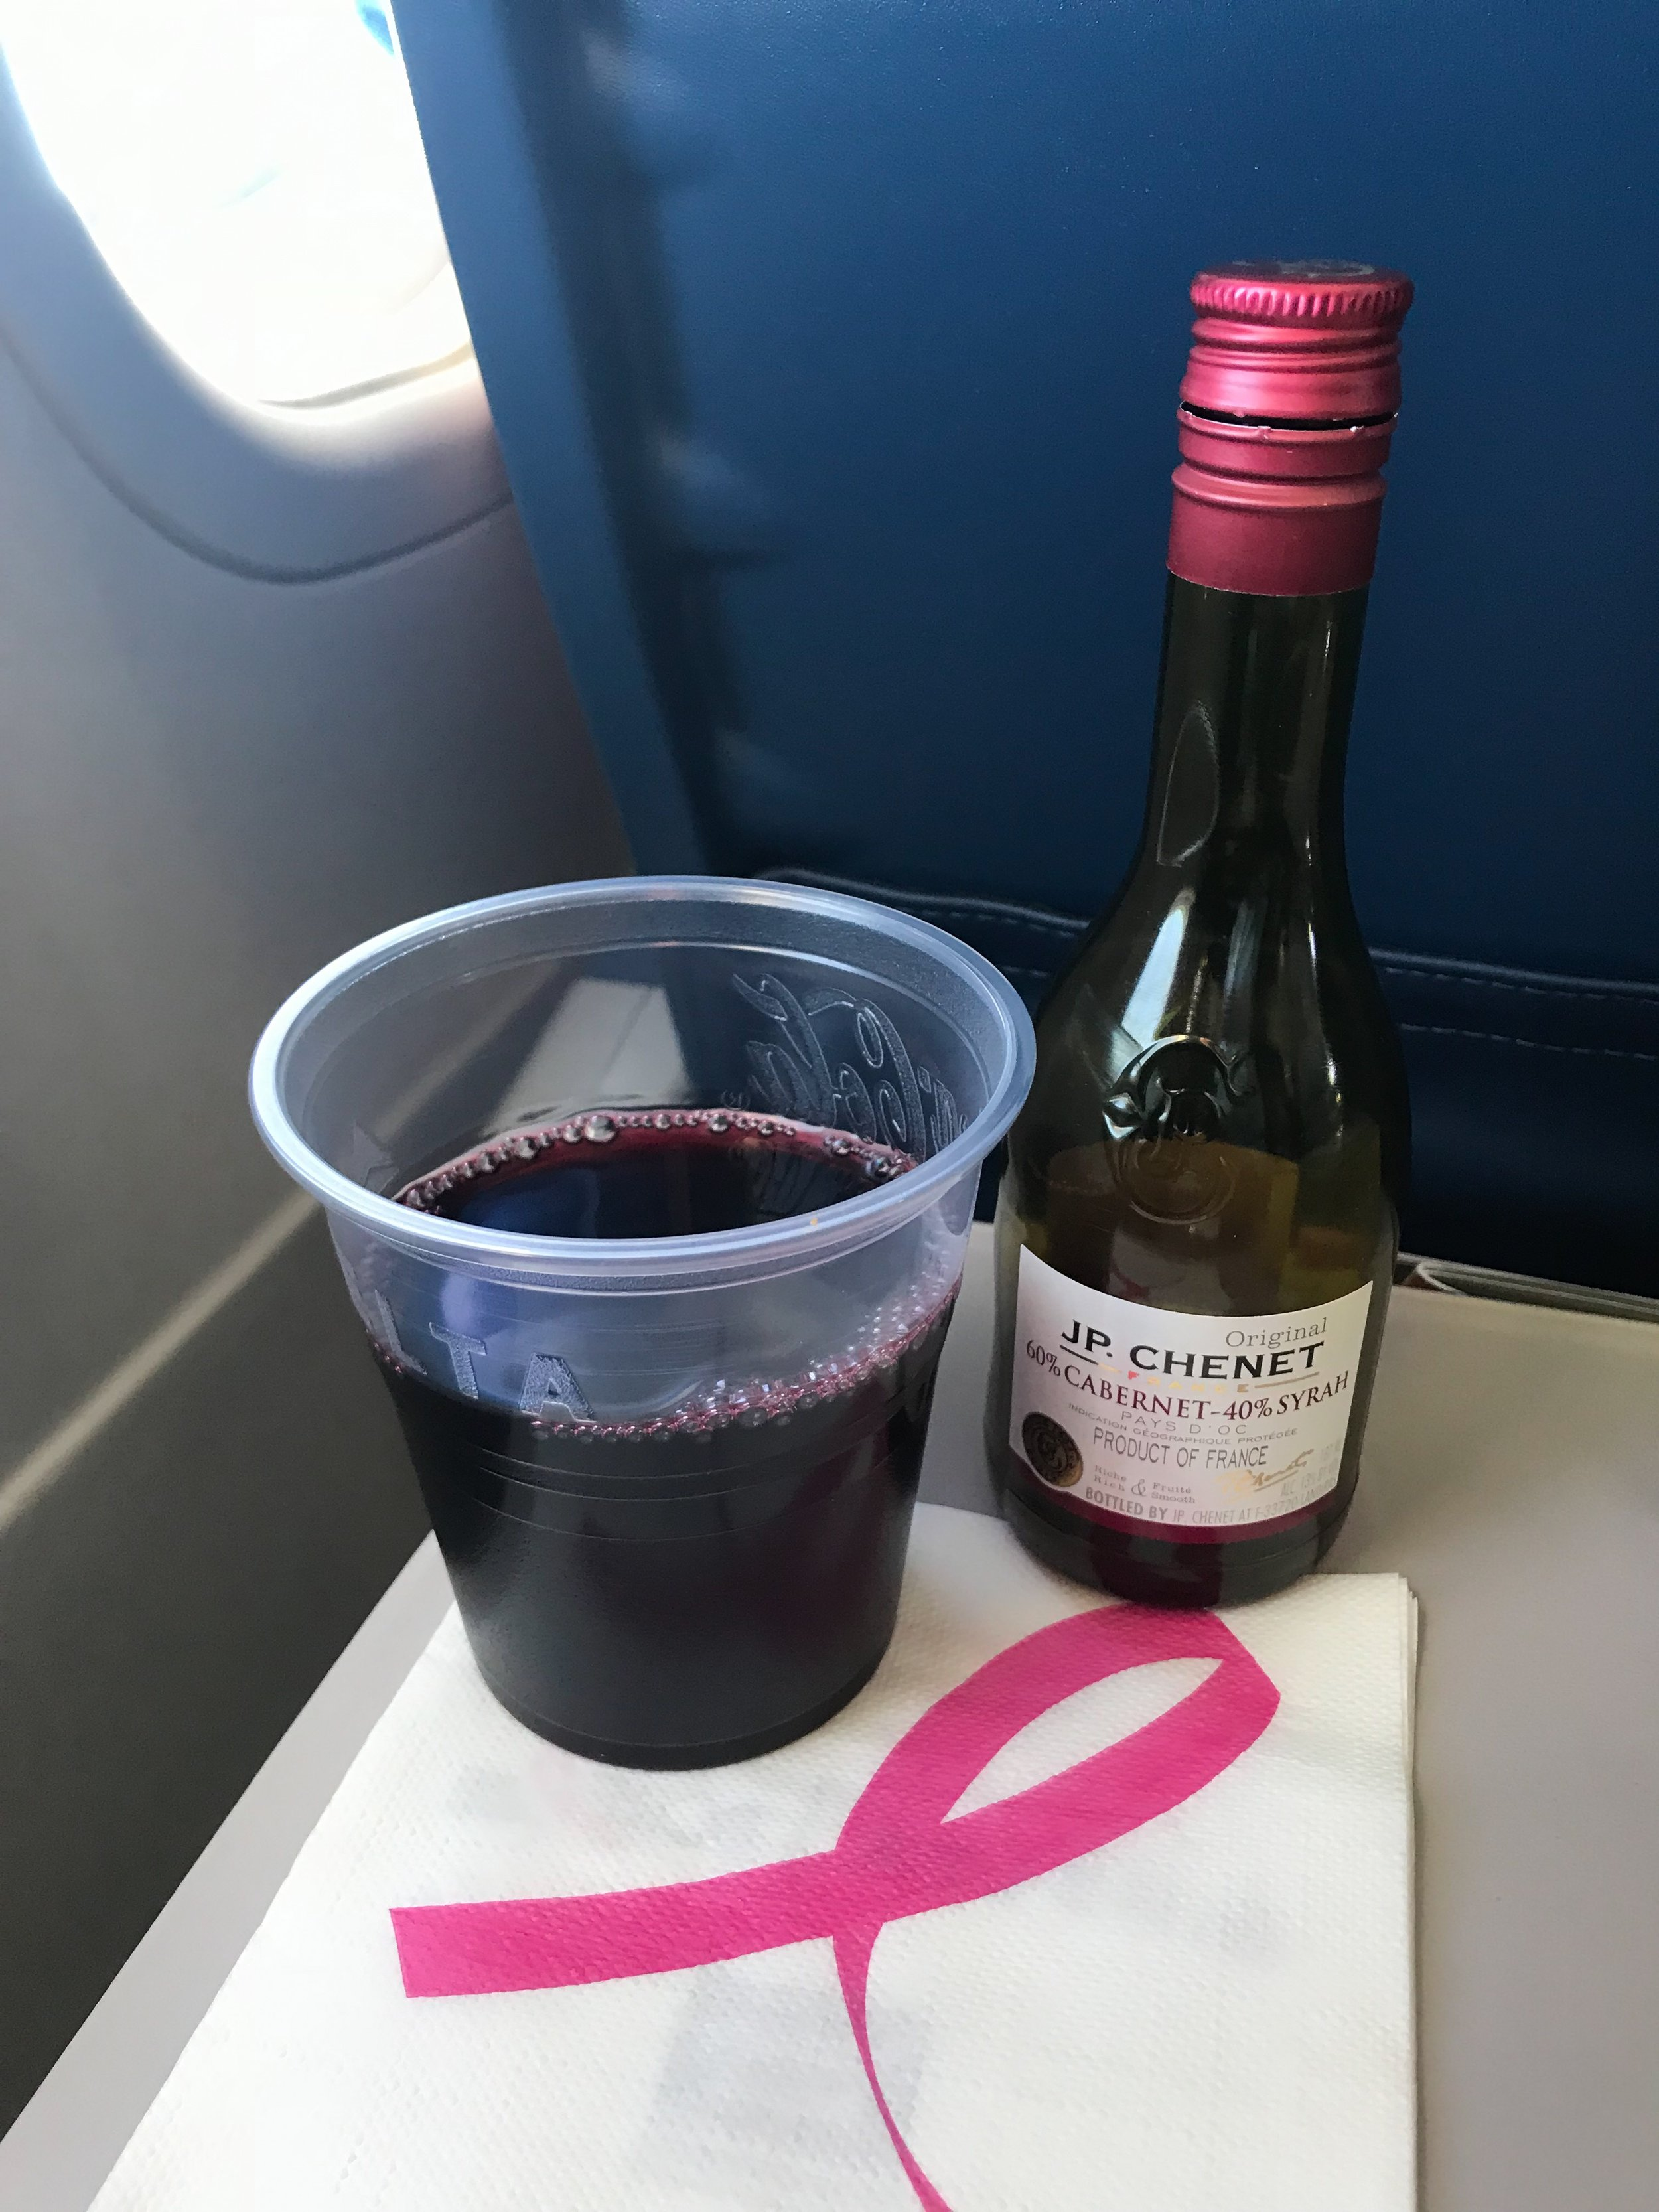 Alcoholic beverages are available for purchase in Main Cabin. Delta is a cashless airline, so have a credit or debit card ready. Non-alcoholic beverages are complimentary.